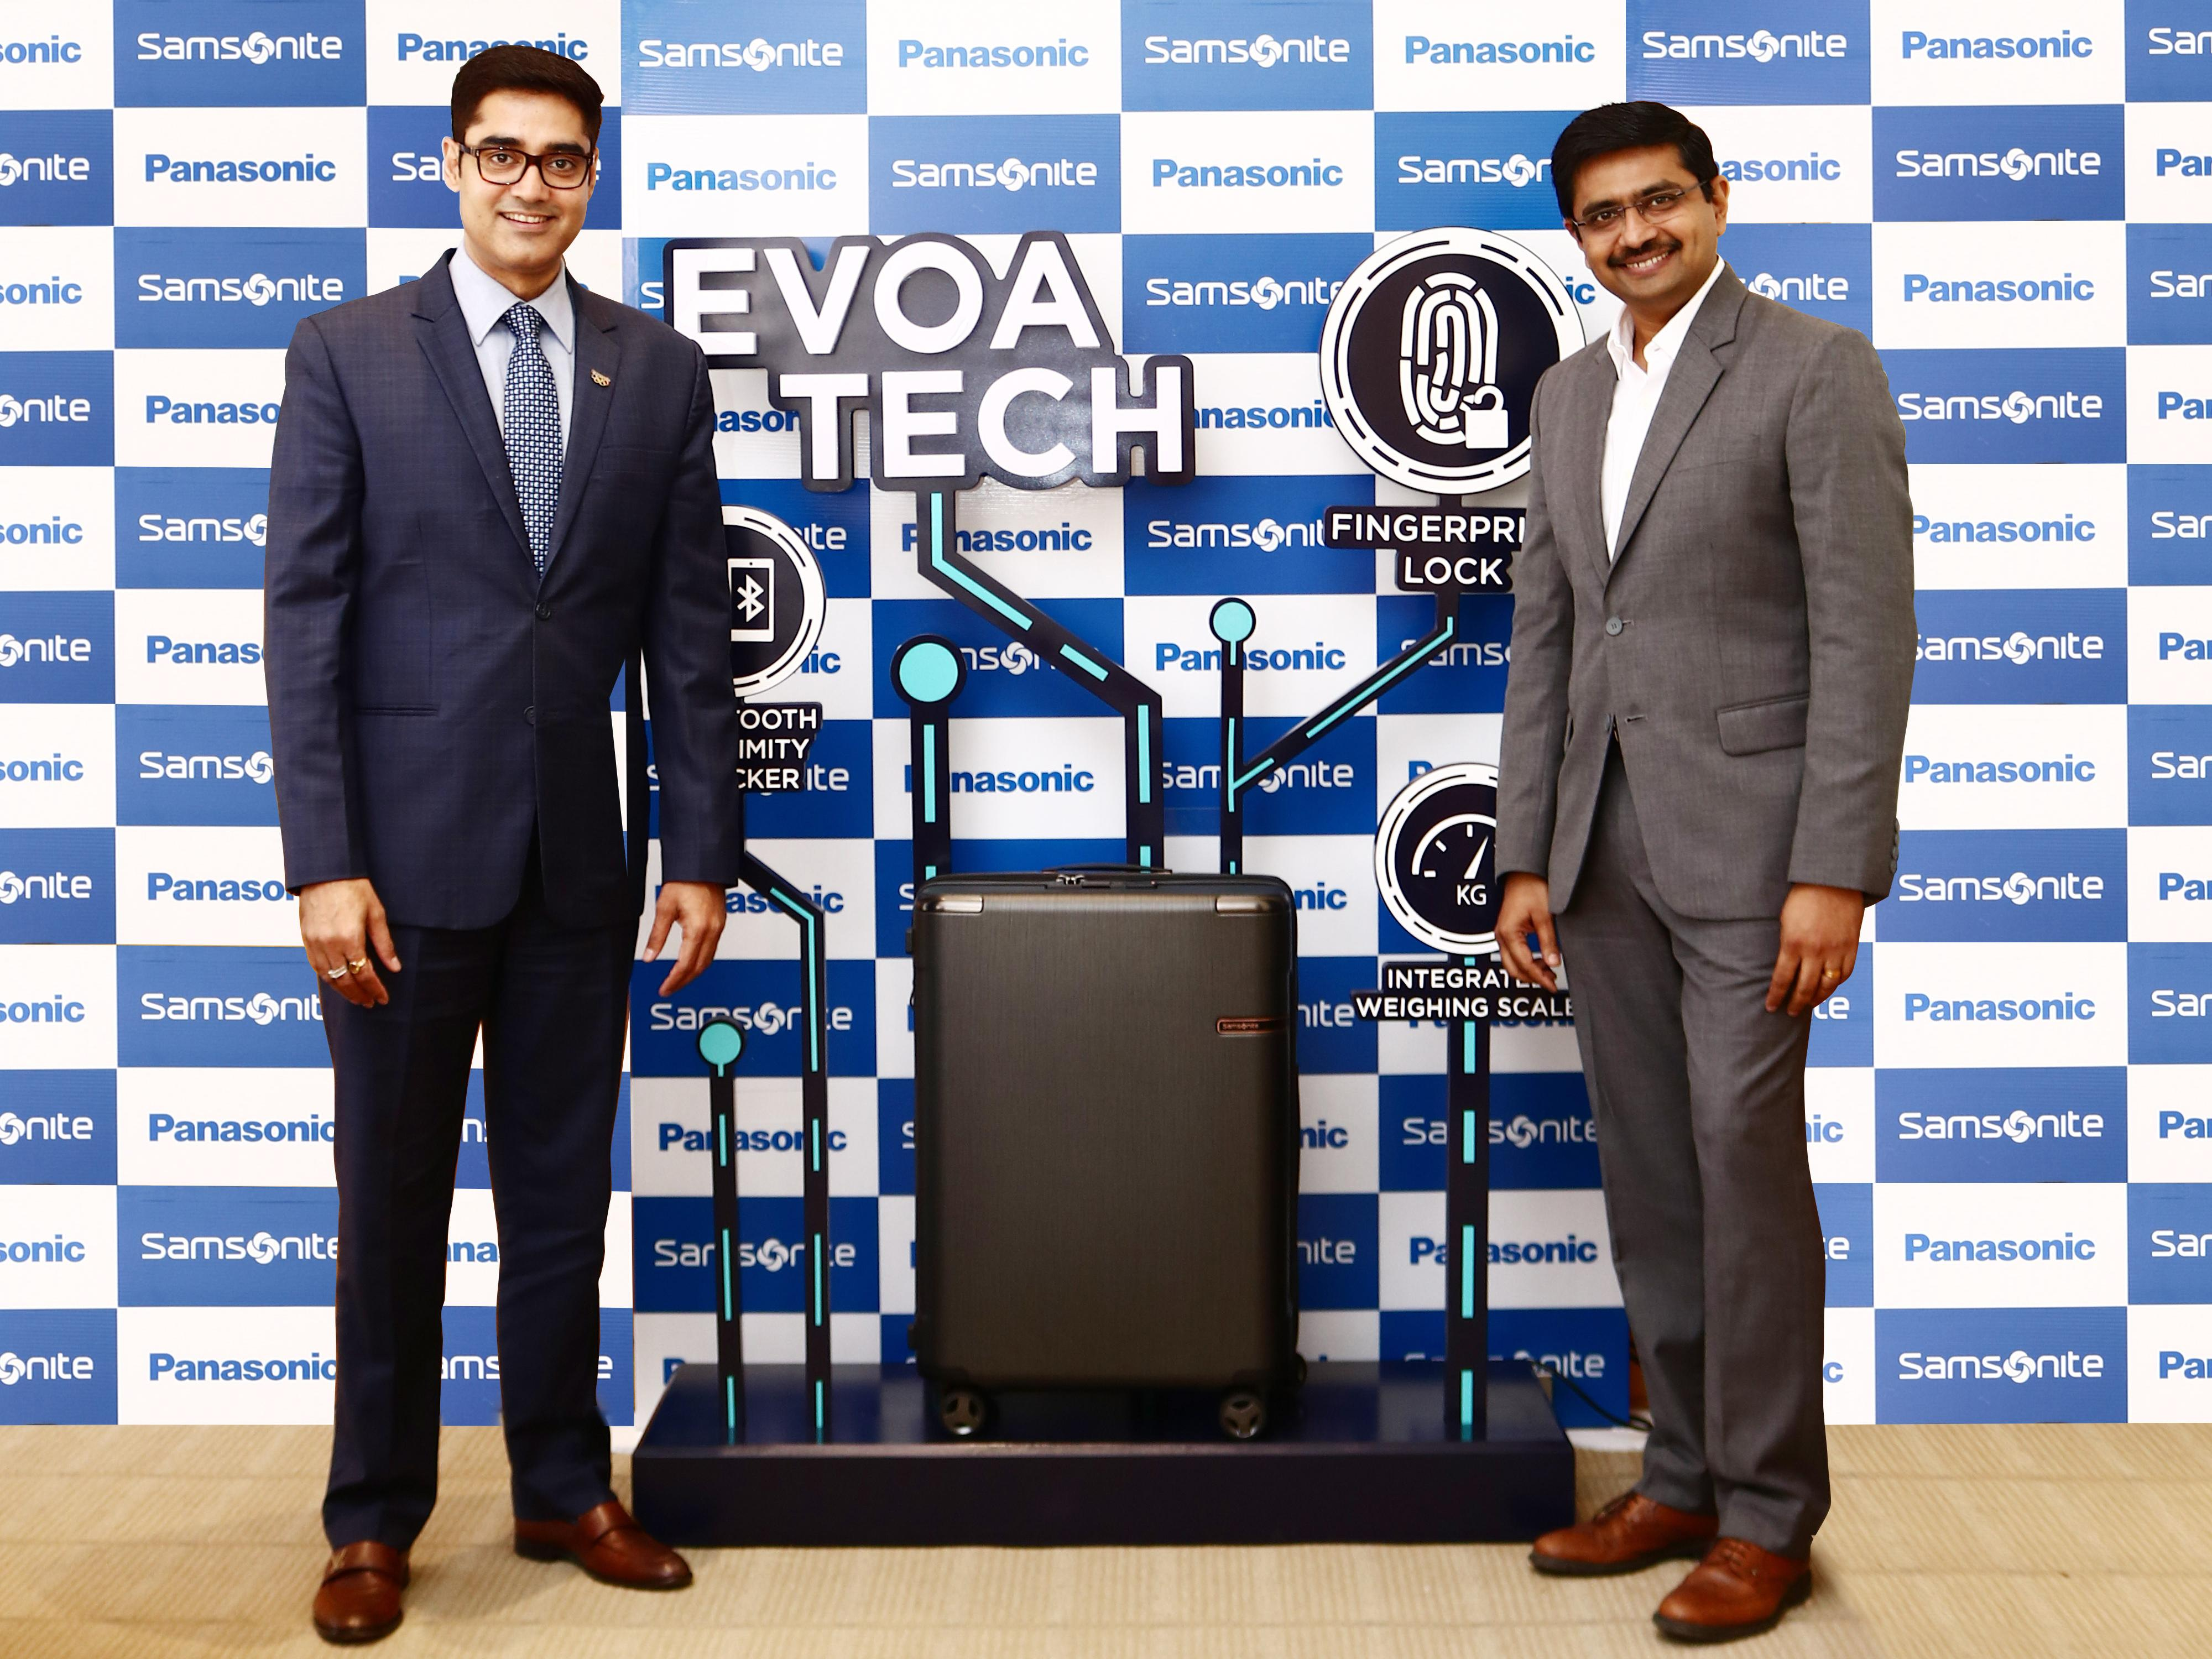 photo: (From left to right) Mr. Manish Sharma, President and CEO, Panasonic India and South Asia, Mr. Jai Krishnan, CEO, Samsonite South Asia